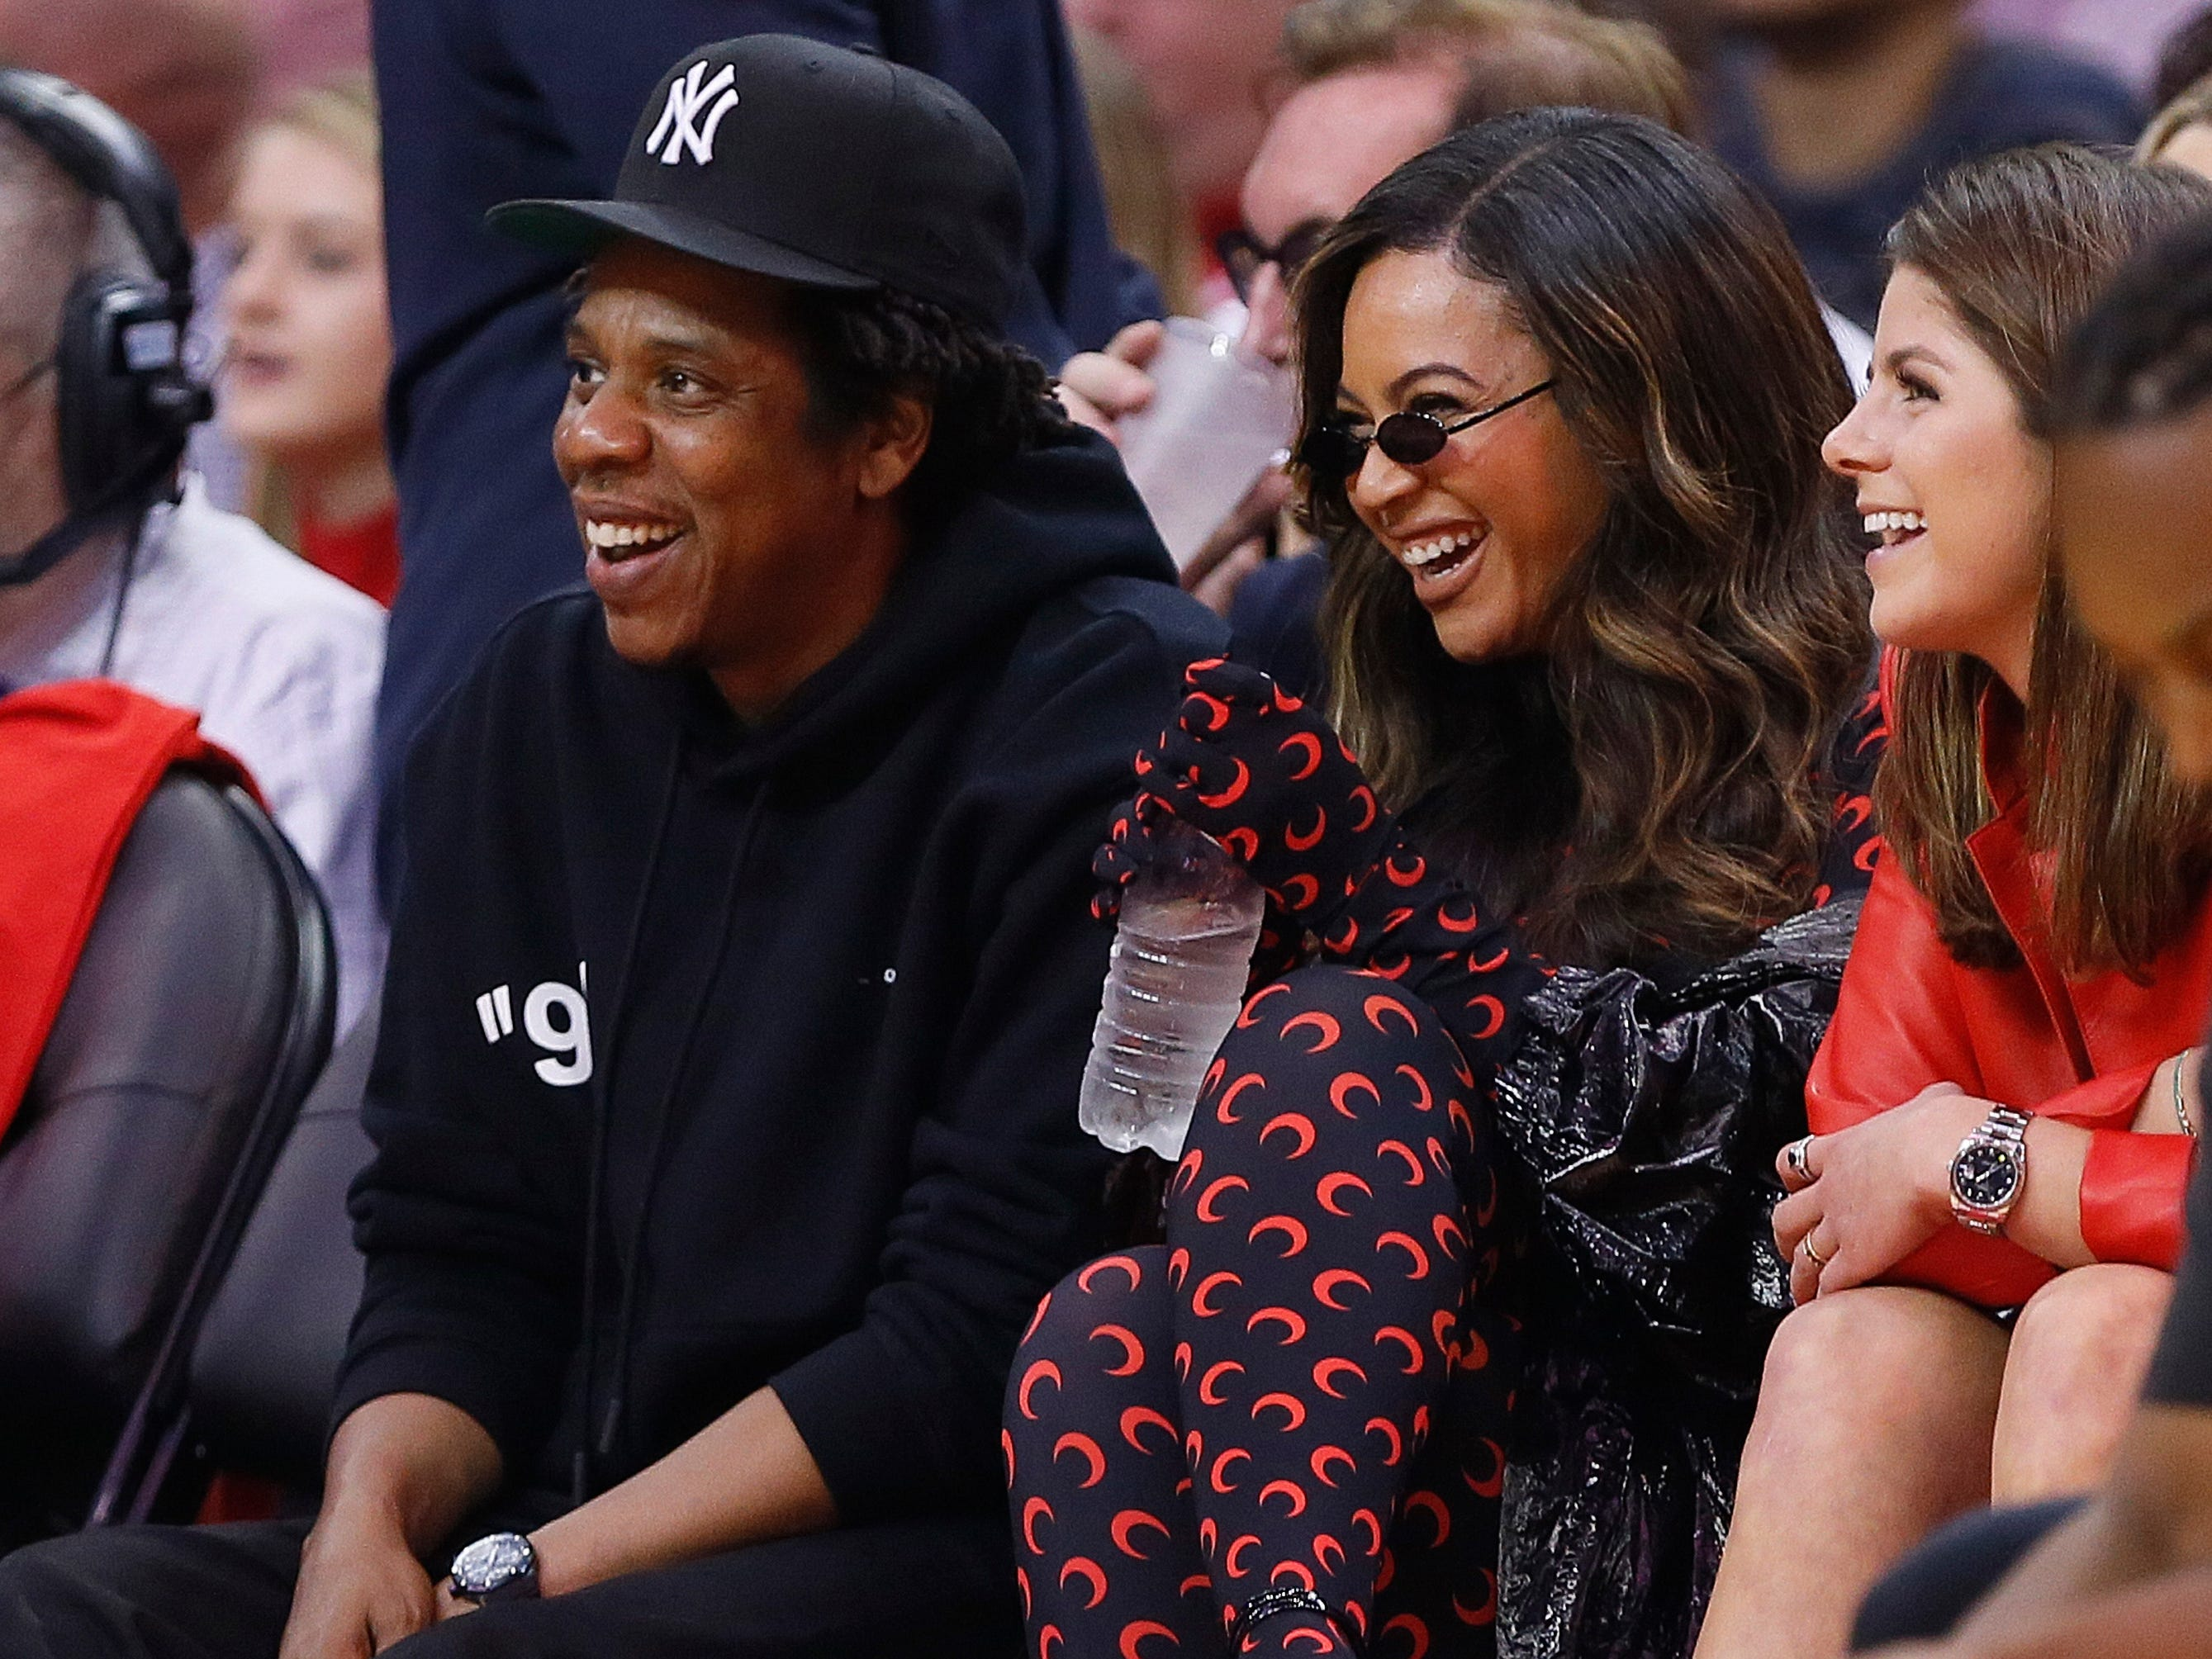 May 10: Jay-Z and Beyonce take in Game 6 between the Warriors and Rockets in Houston.